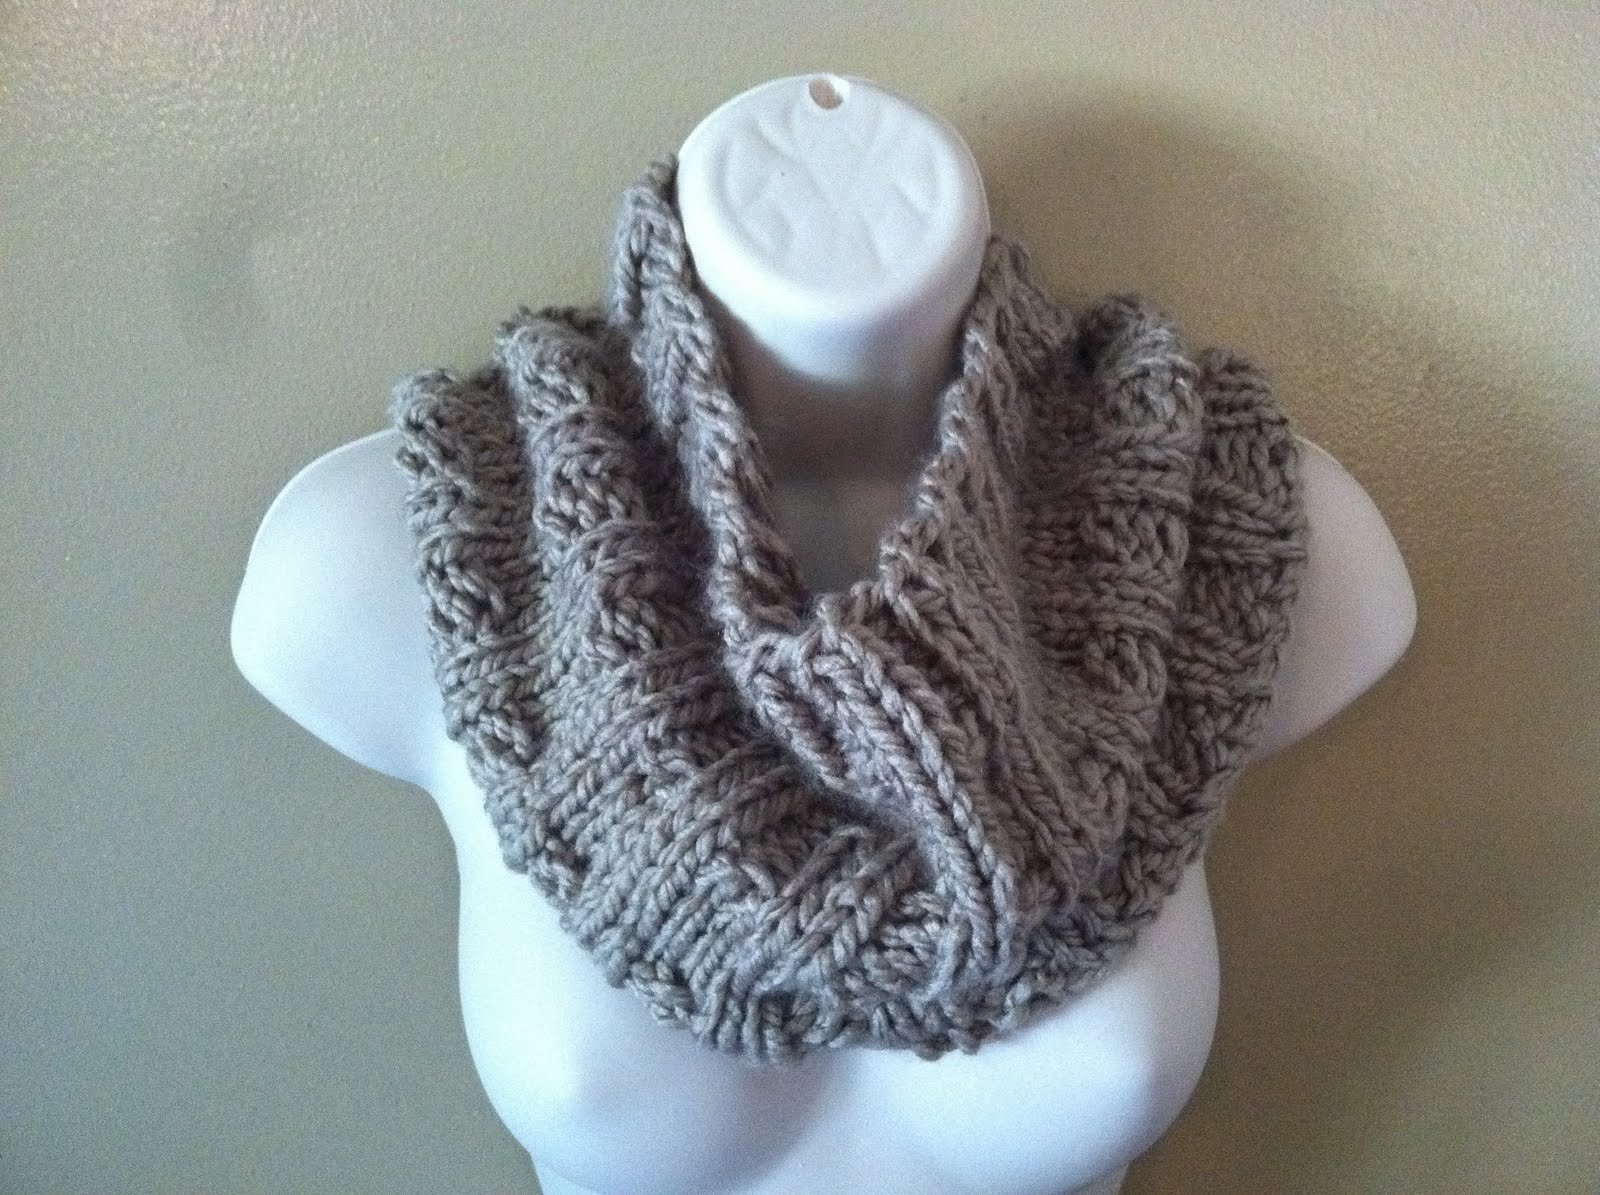 Ruby Knits: Thick and Quick Ribbed Cowl